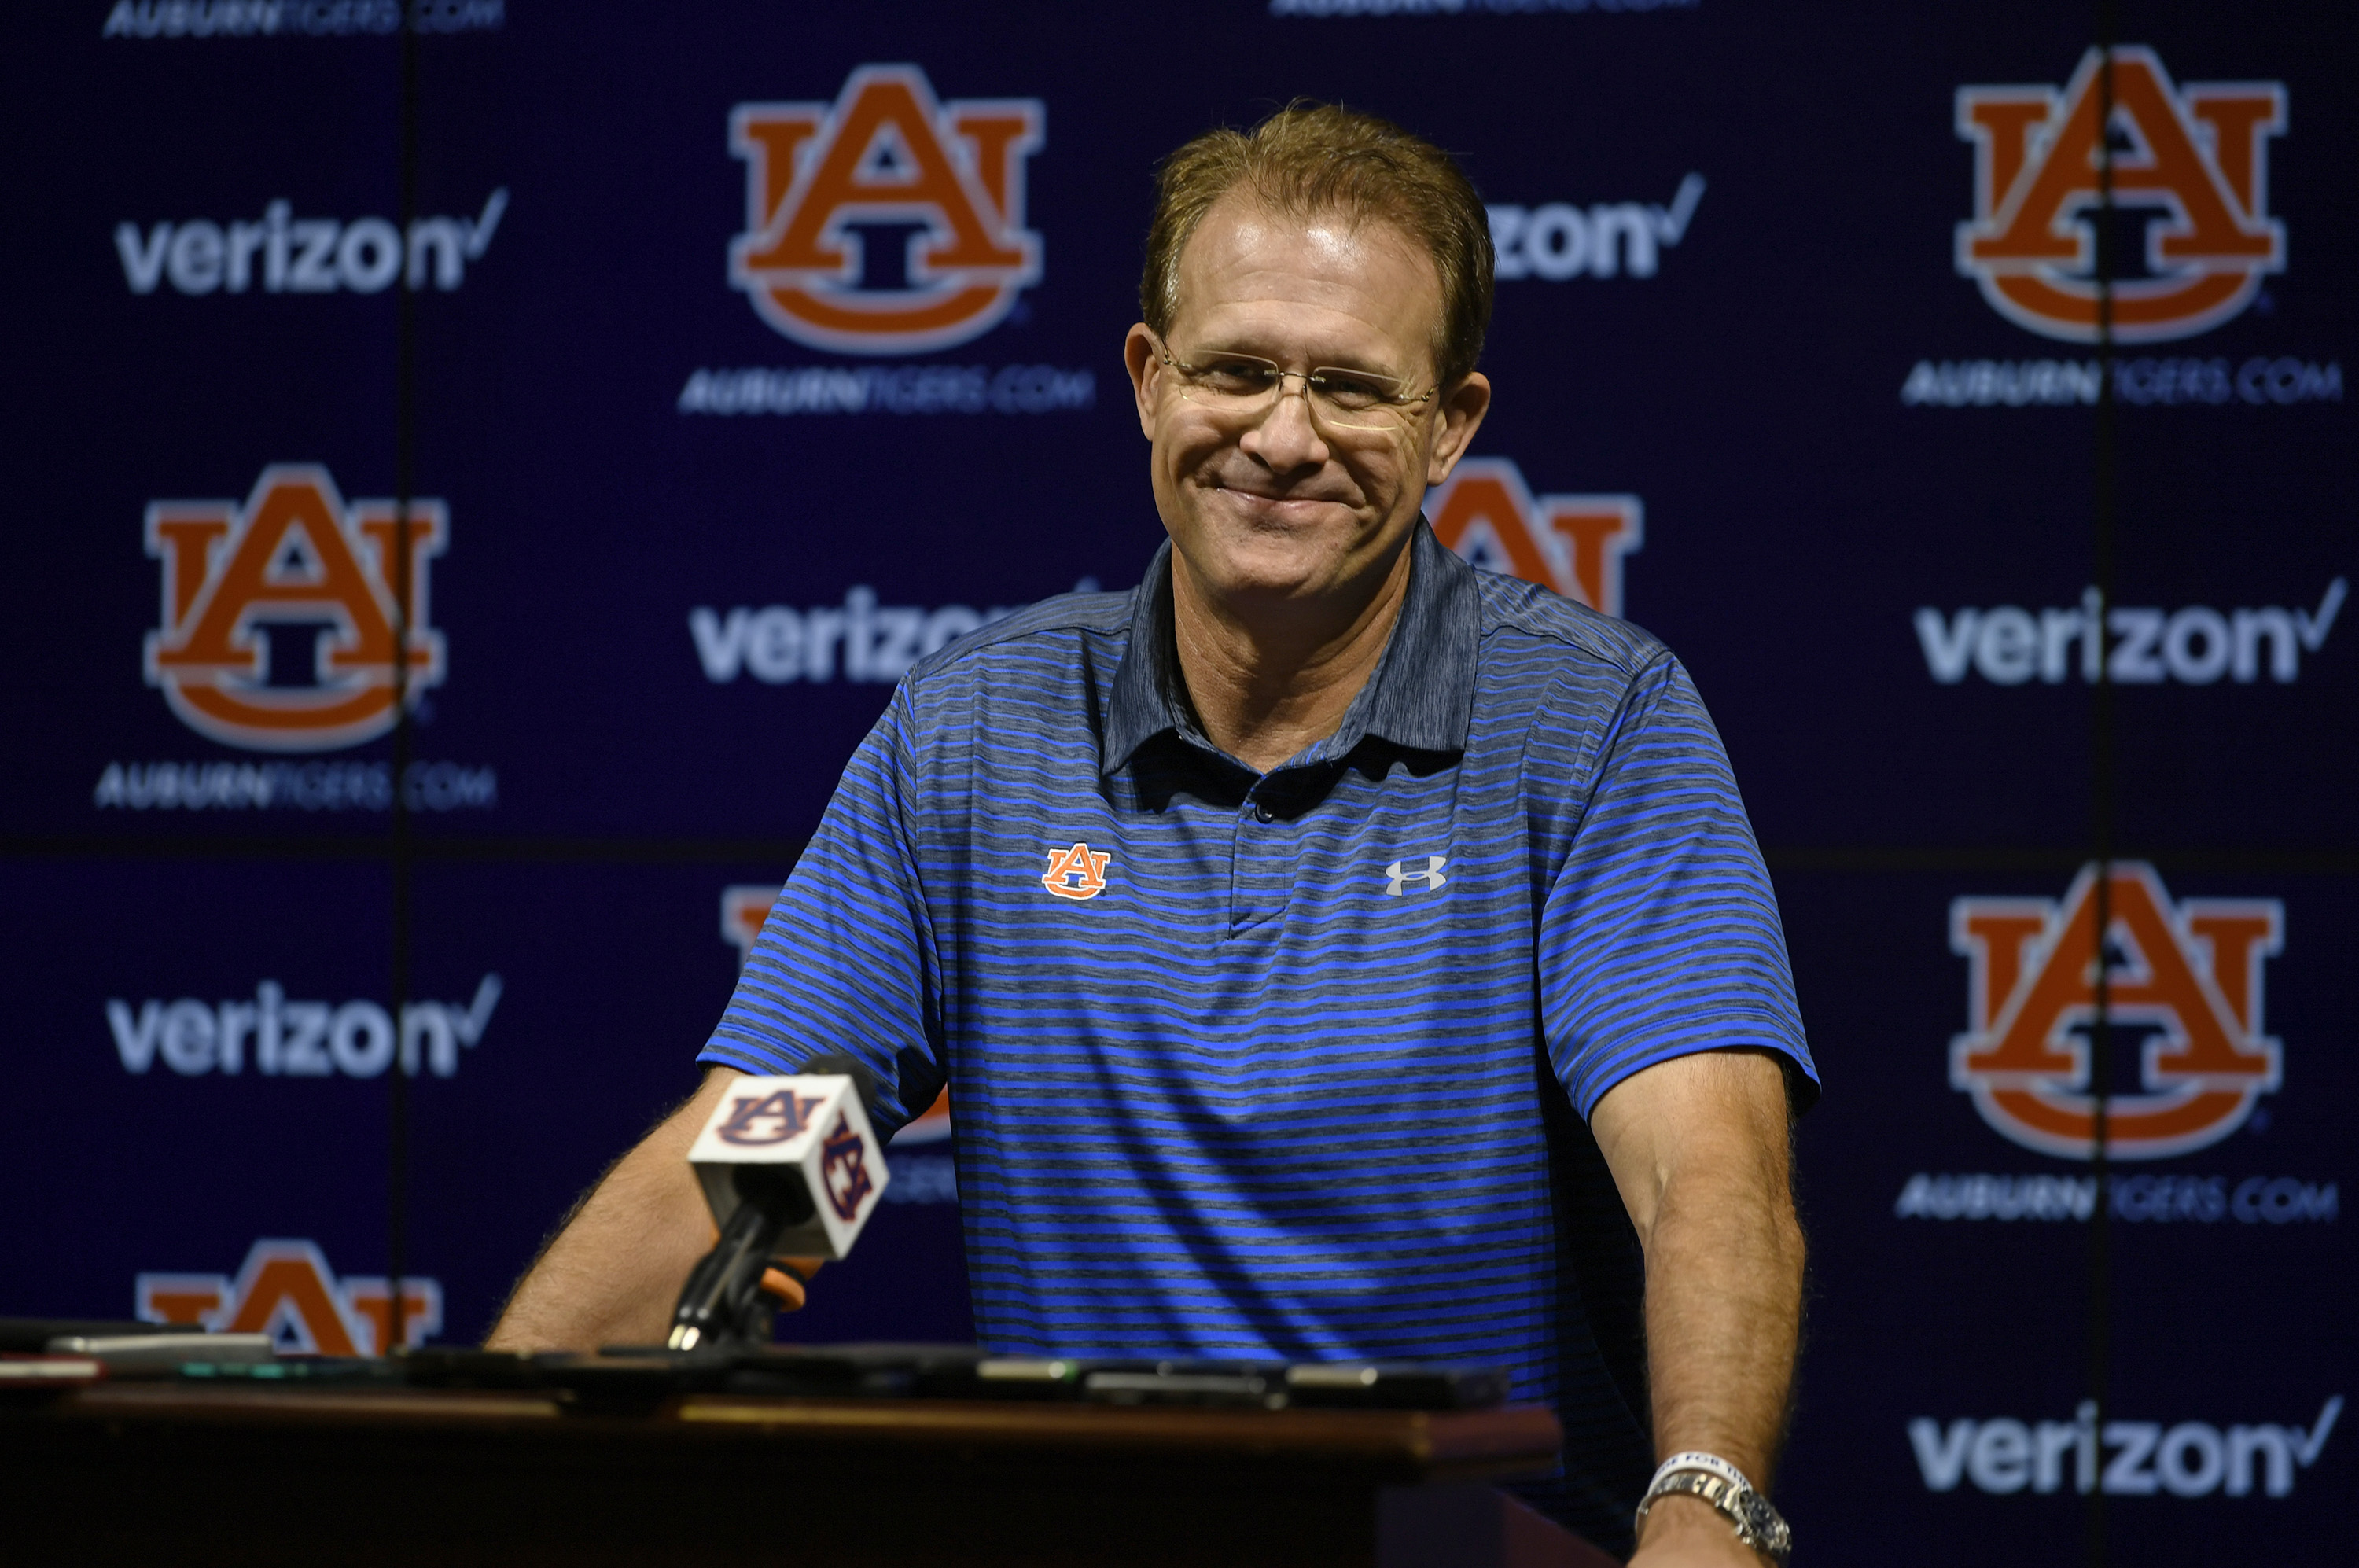 Live Updates: Gus Malzahn previews Auburn's SEC opener against Texas A&M